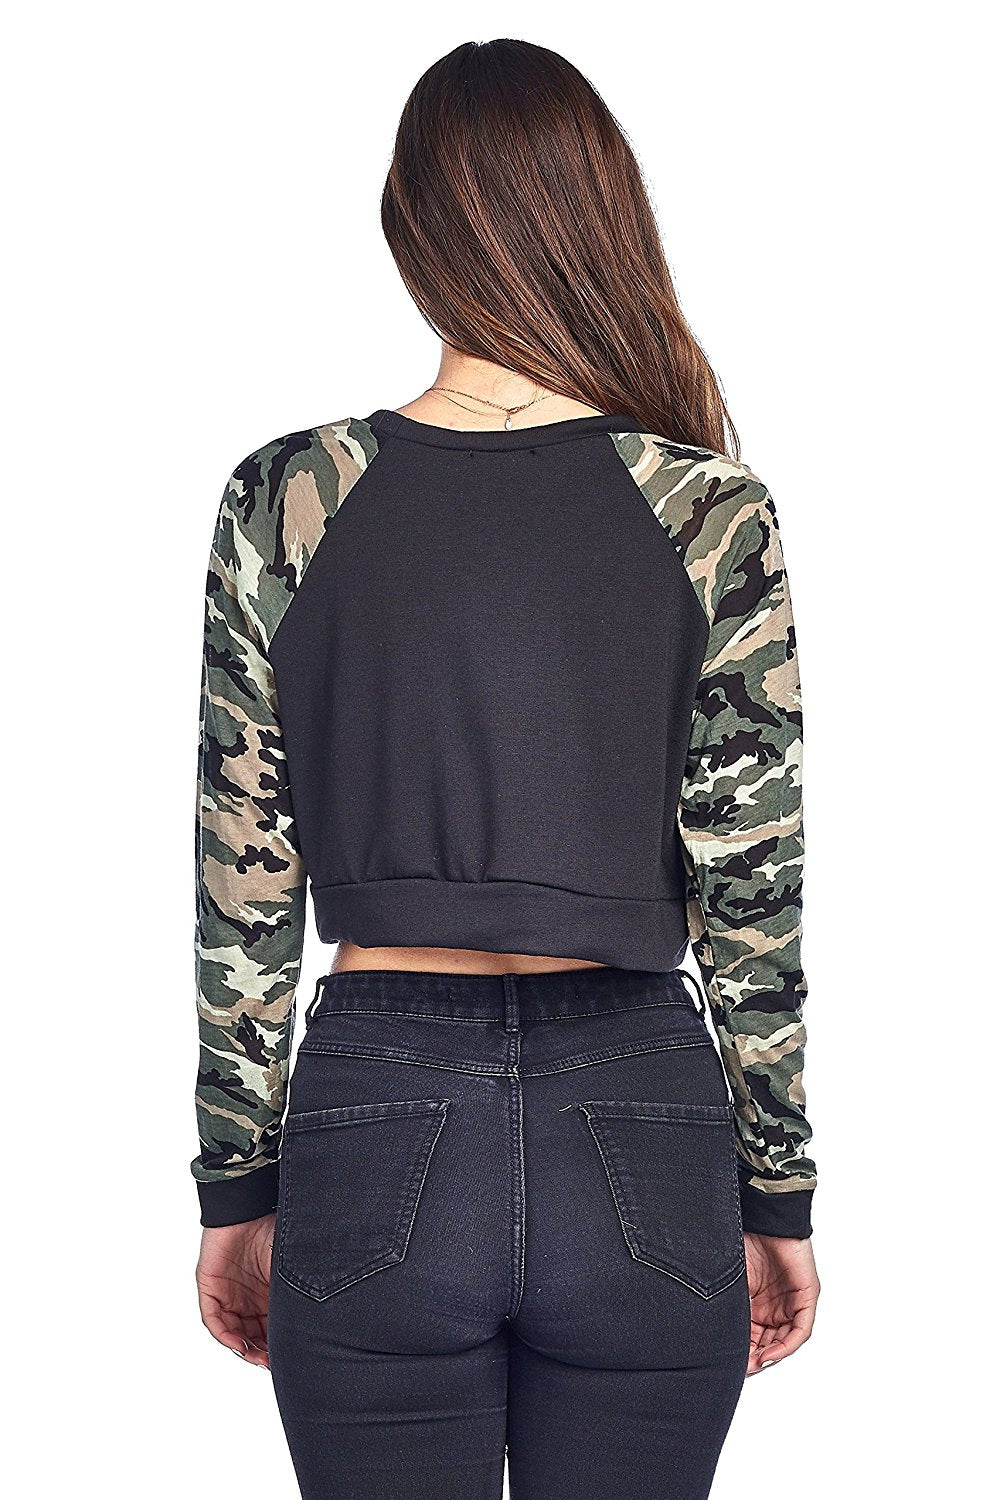 Khanomak Long Sleeve Round Neck Camo Contrast Sleeves Cropped Sweatshirt Top